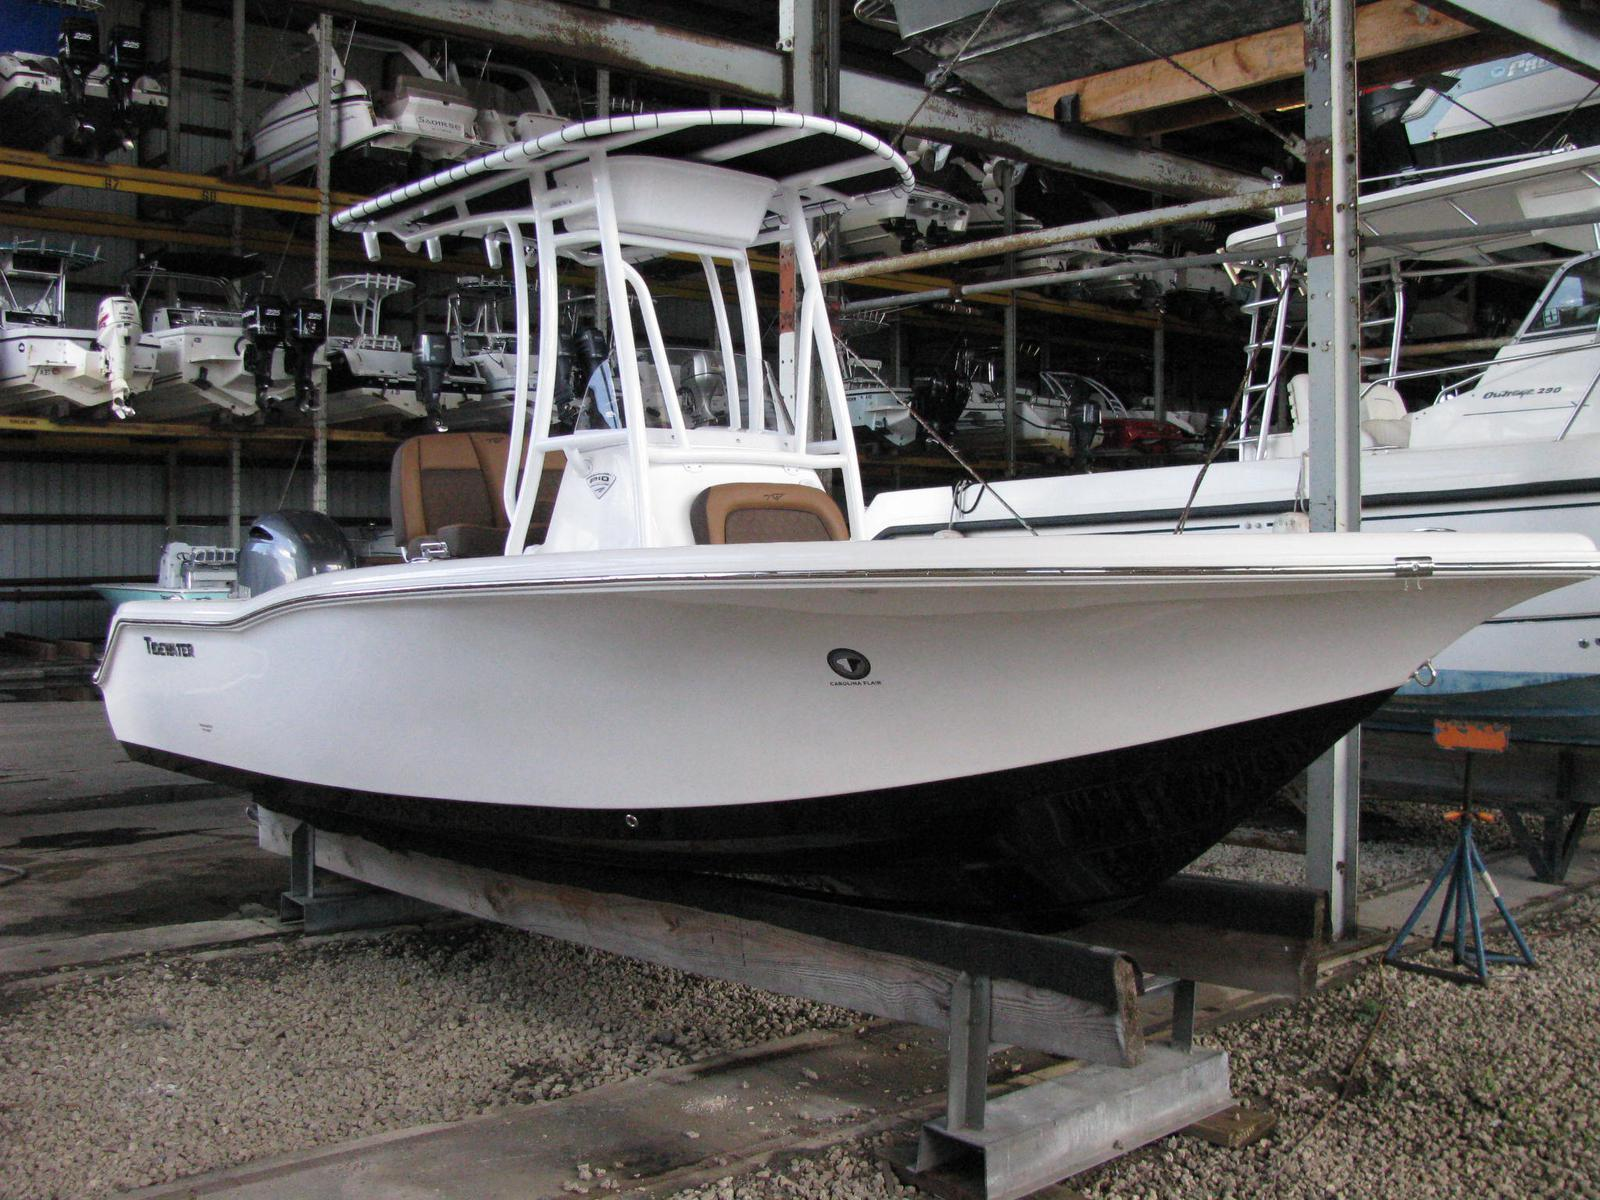 2017 Tidewater Boats 210 Cc 21 Foot 2017 Motor Boat In